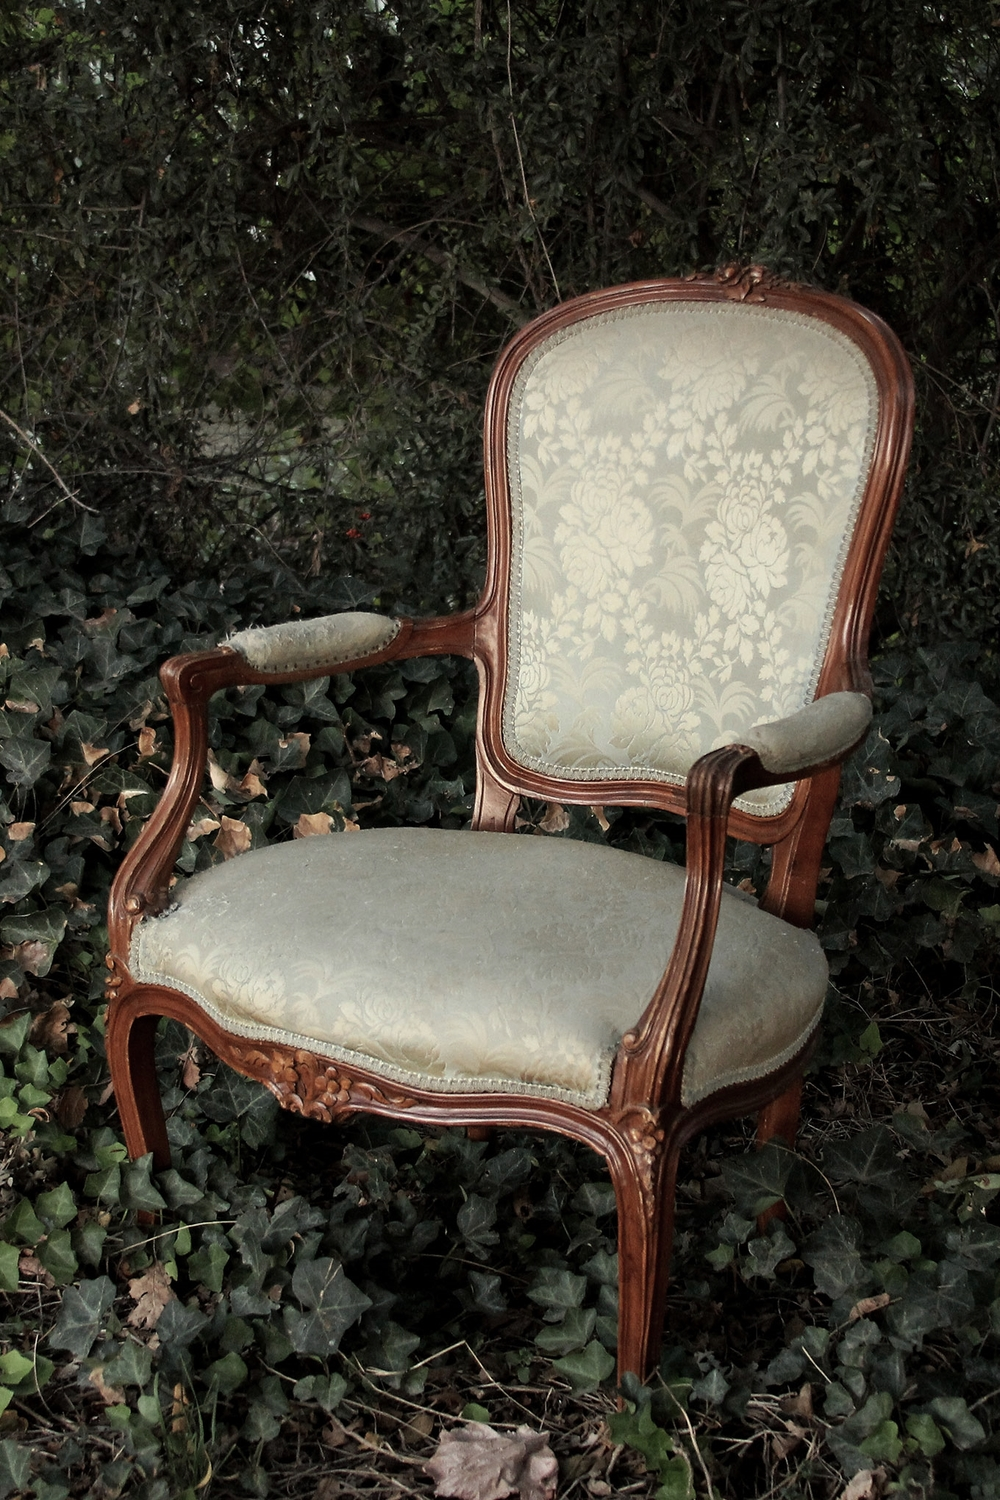 vintage green parlor chair wedding rentals - American Vintage Rentals Wedding Rentals Furniture, Decor